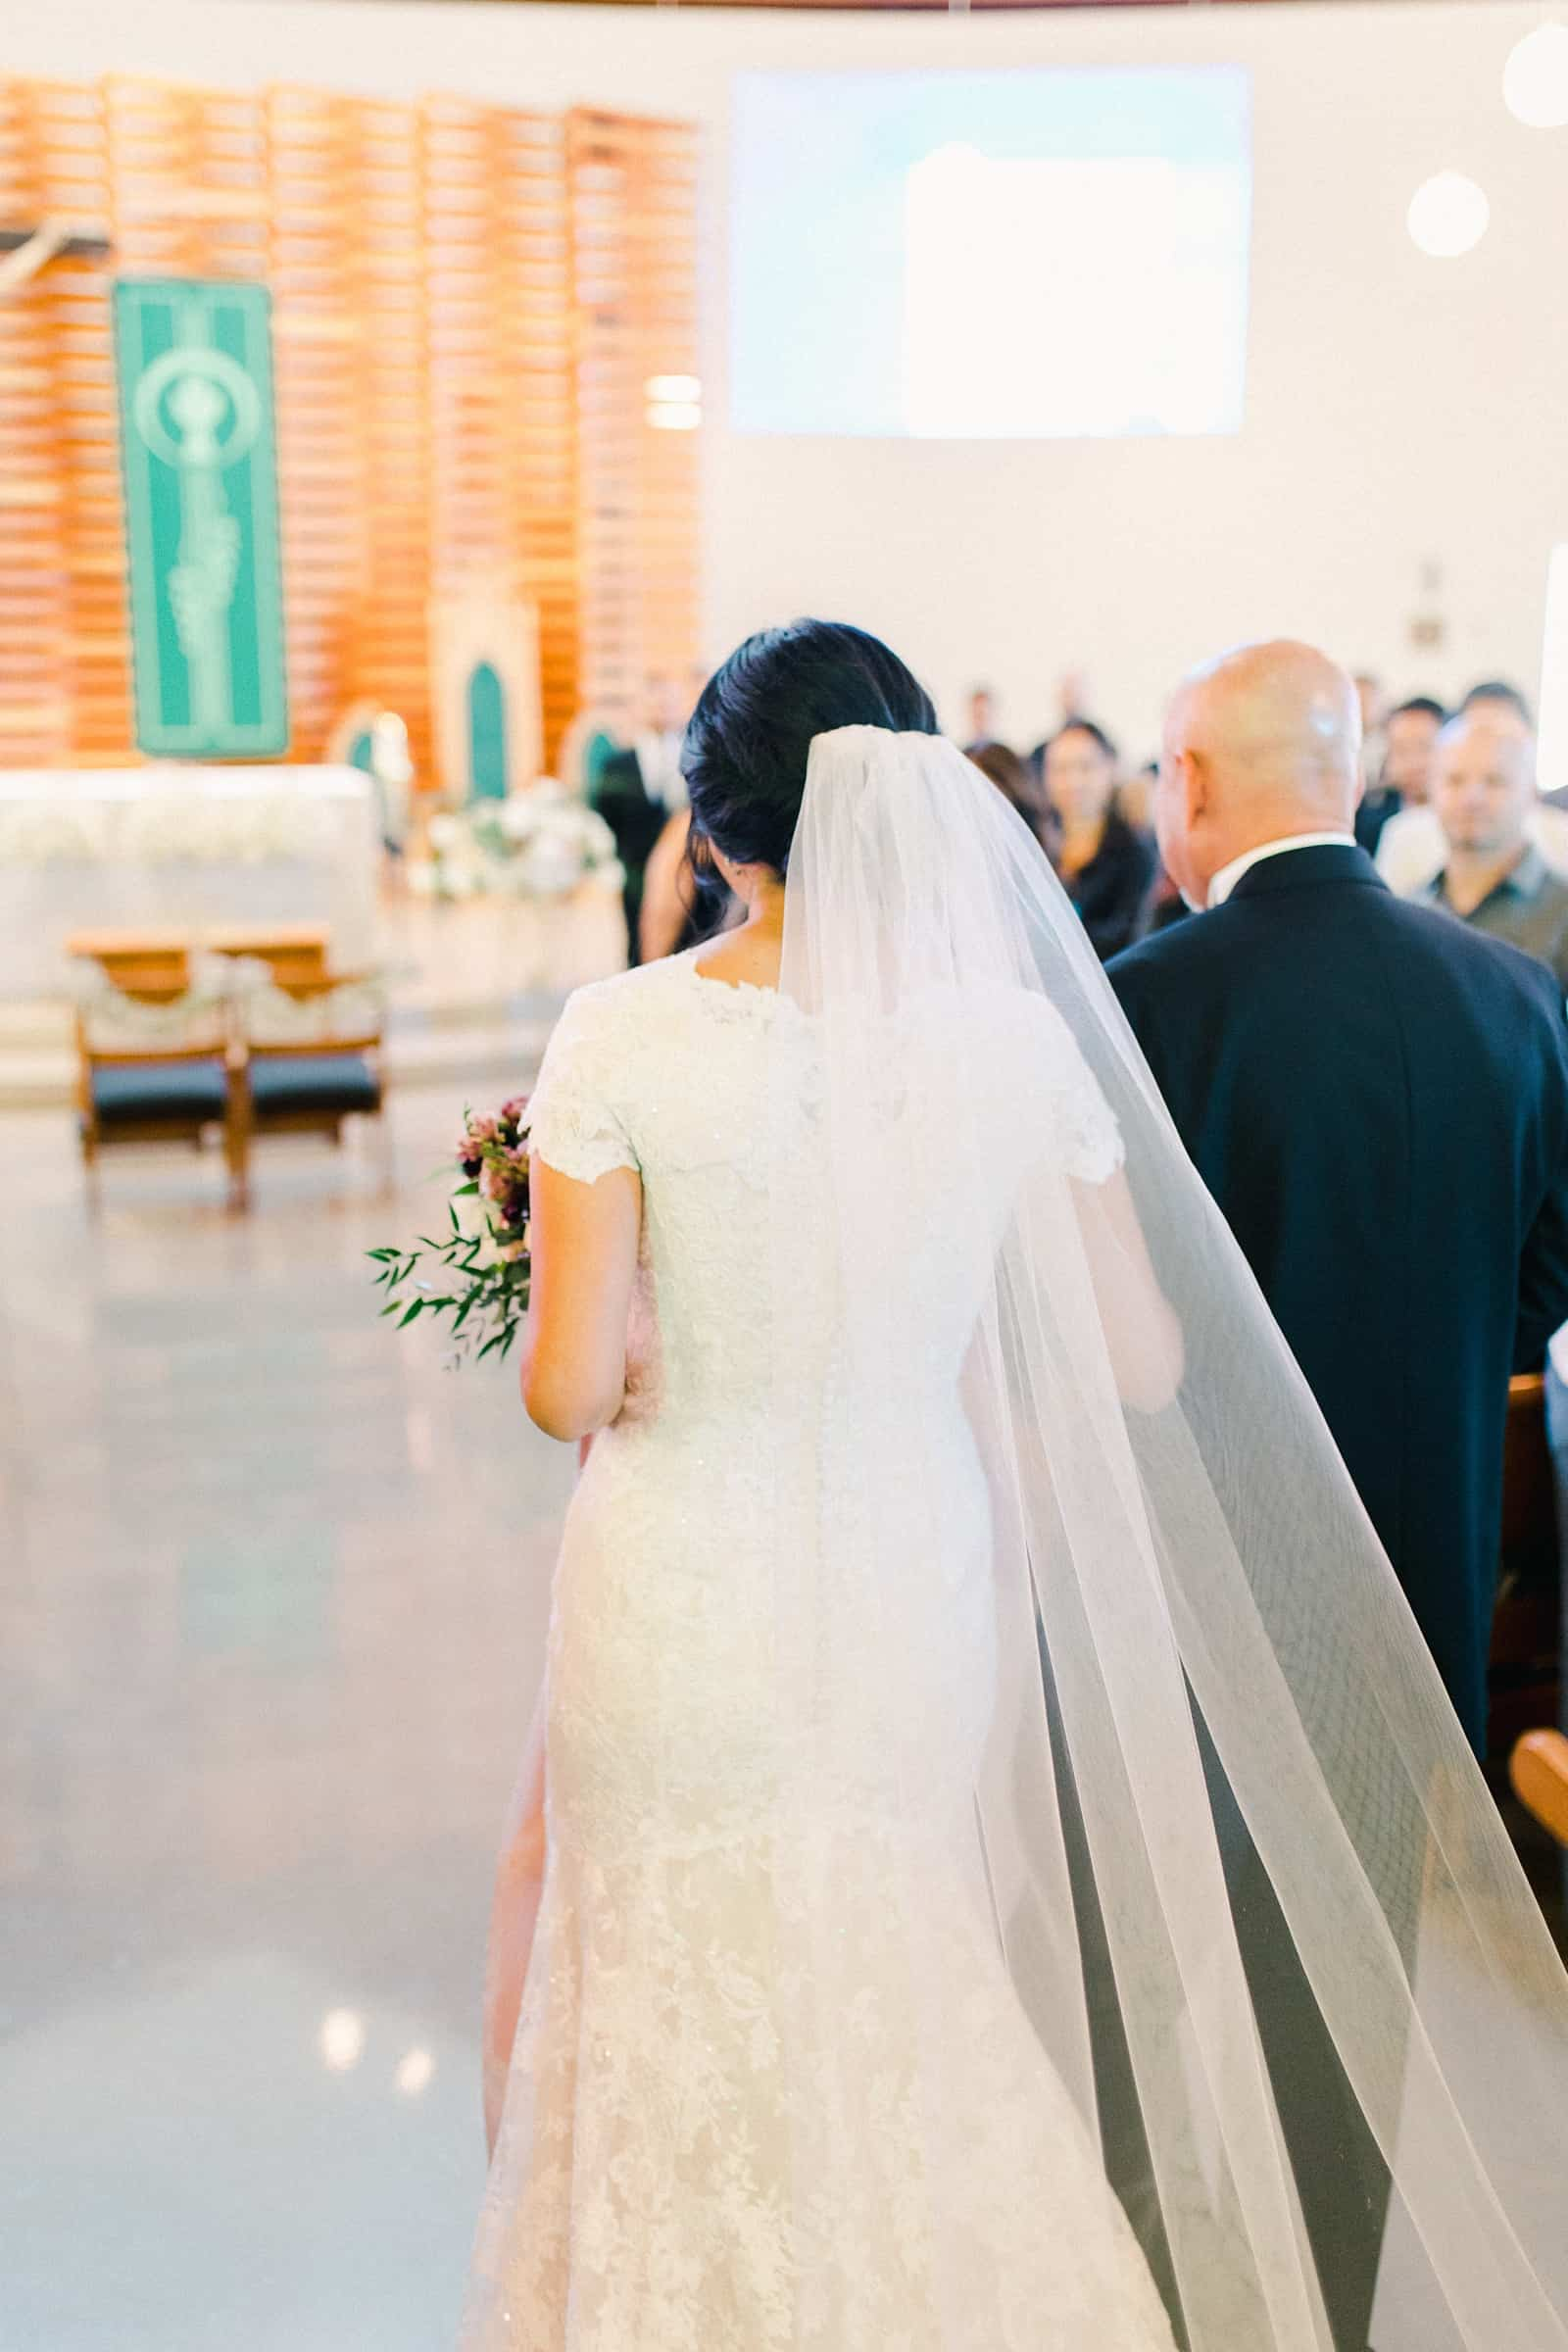 father of the bride walks her down the aisle with long veil and train